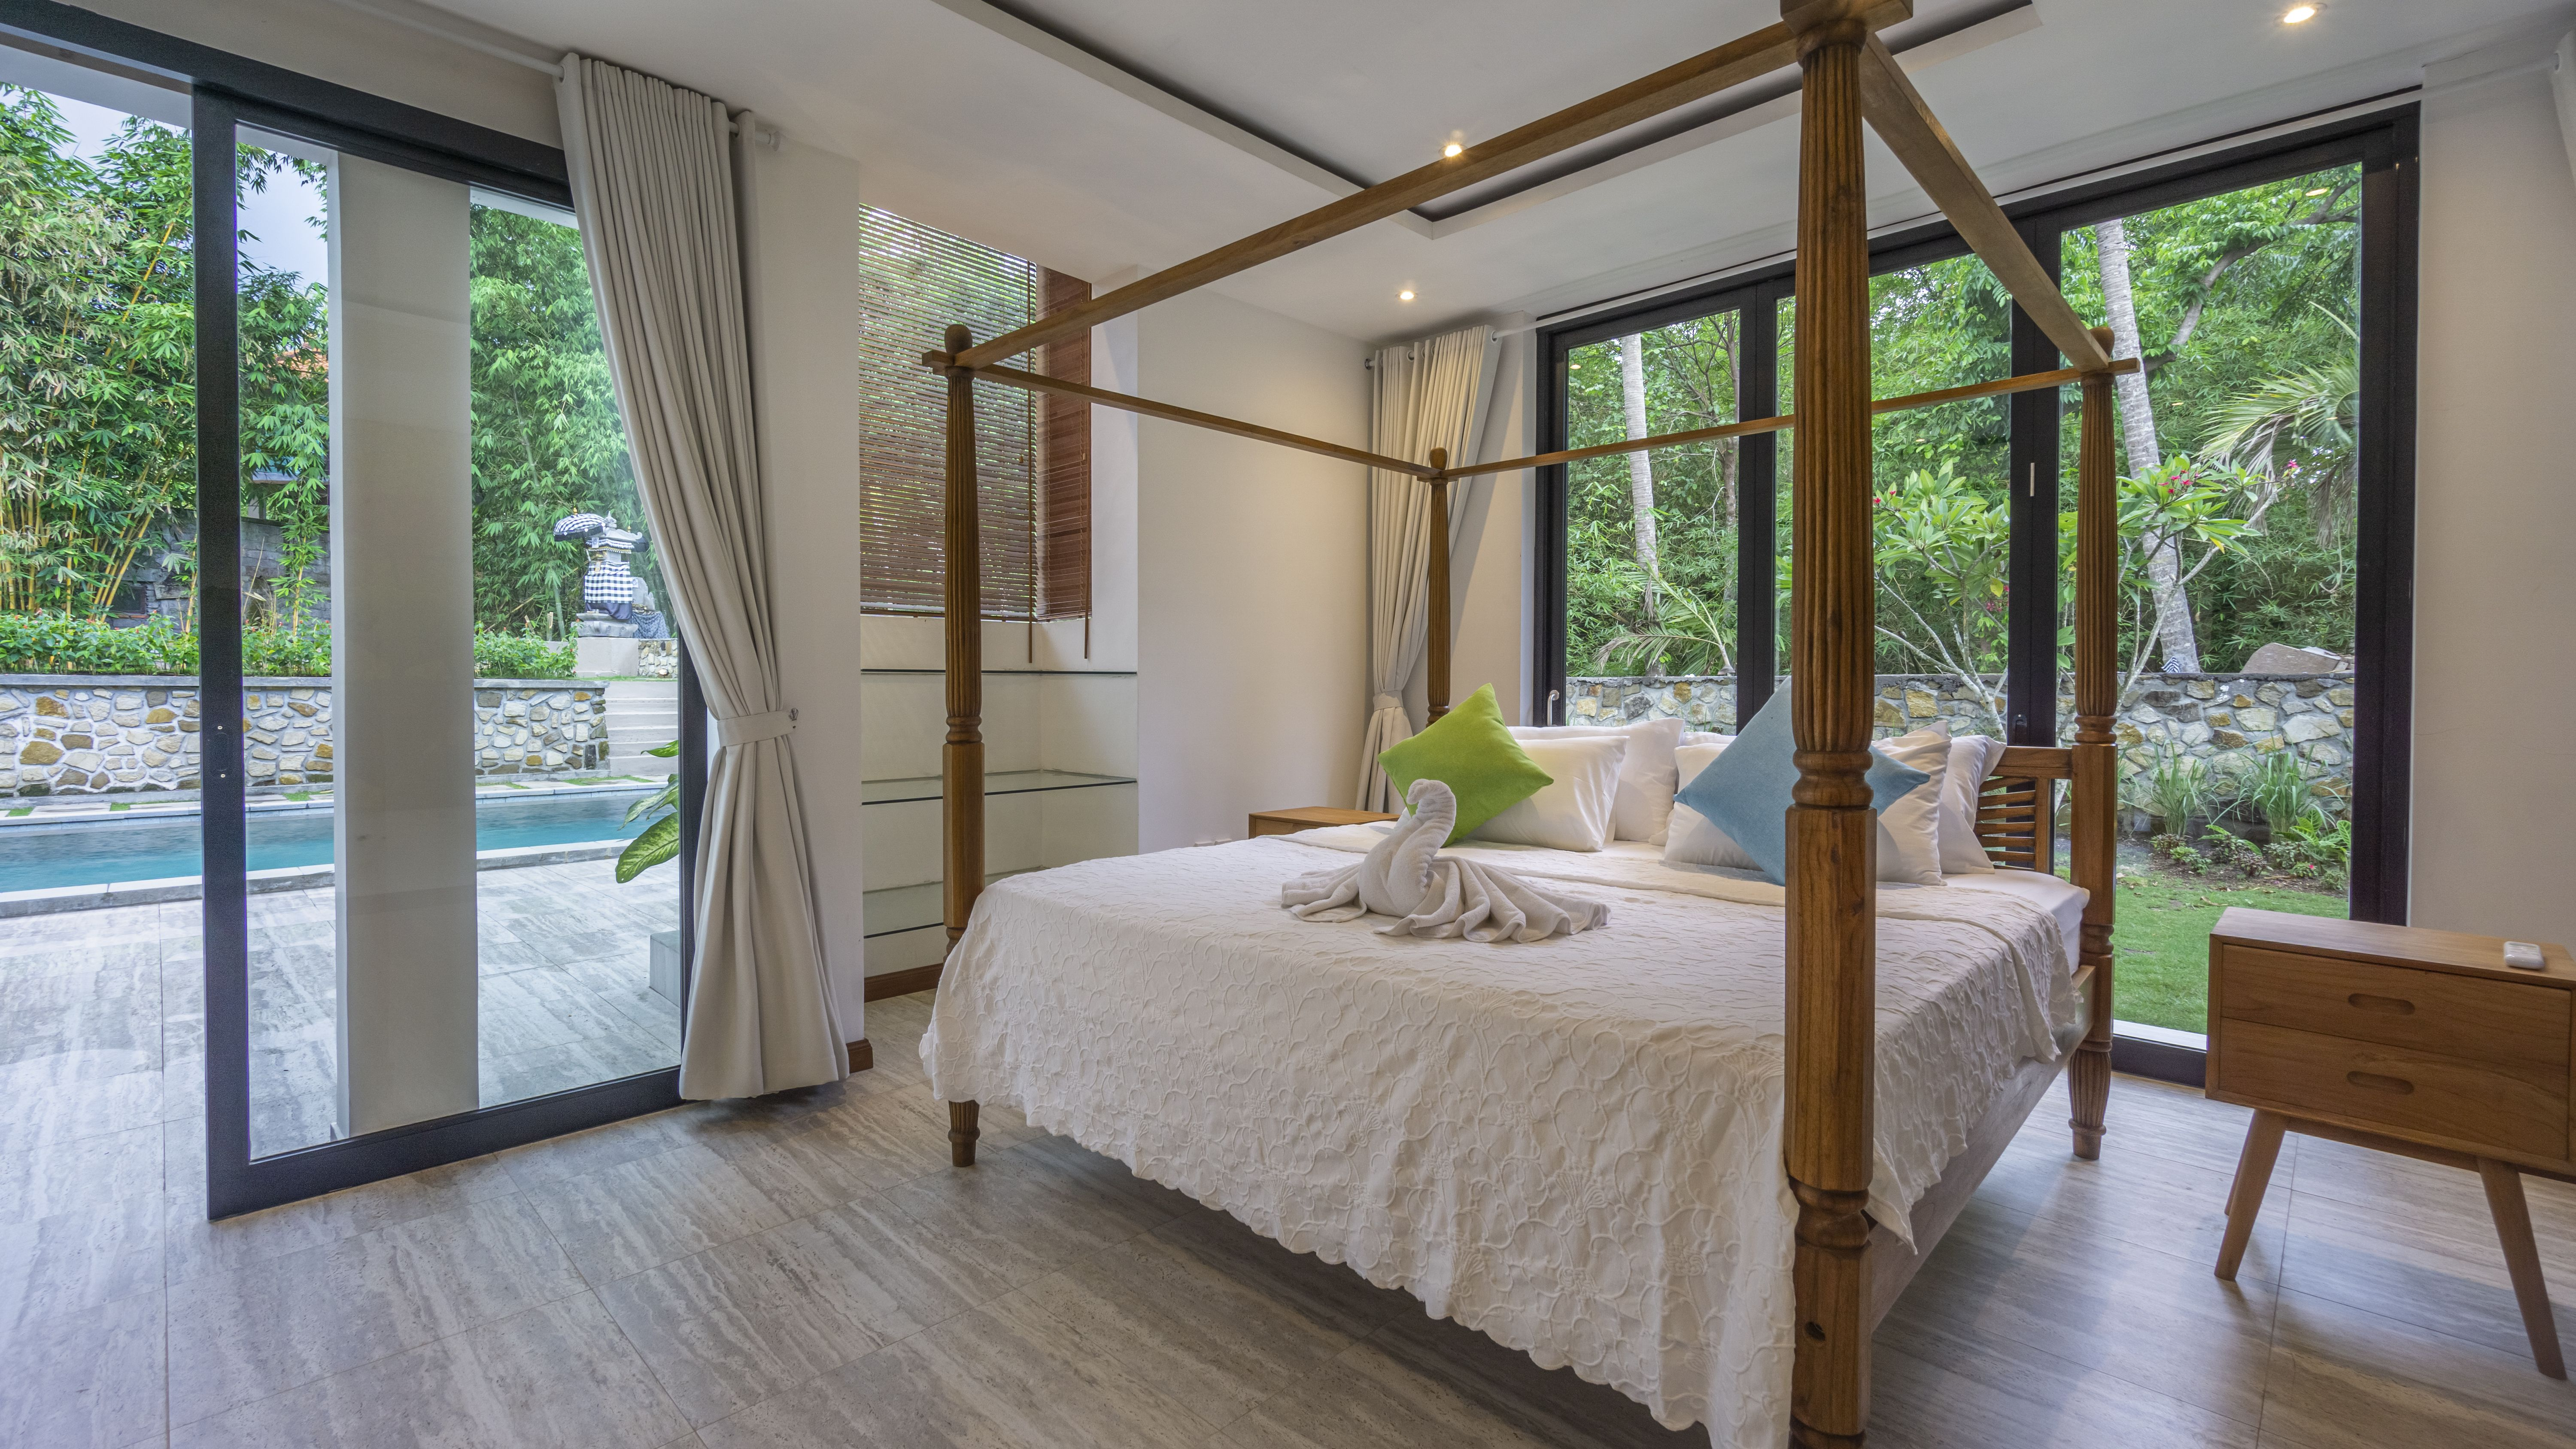 A Luxurious 3 Bedroom Villa In The South Of Ubud Could Be What Everyone Has Been Looking For Spacious Living Villa Rental Villa